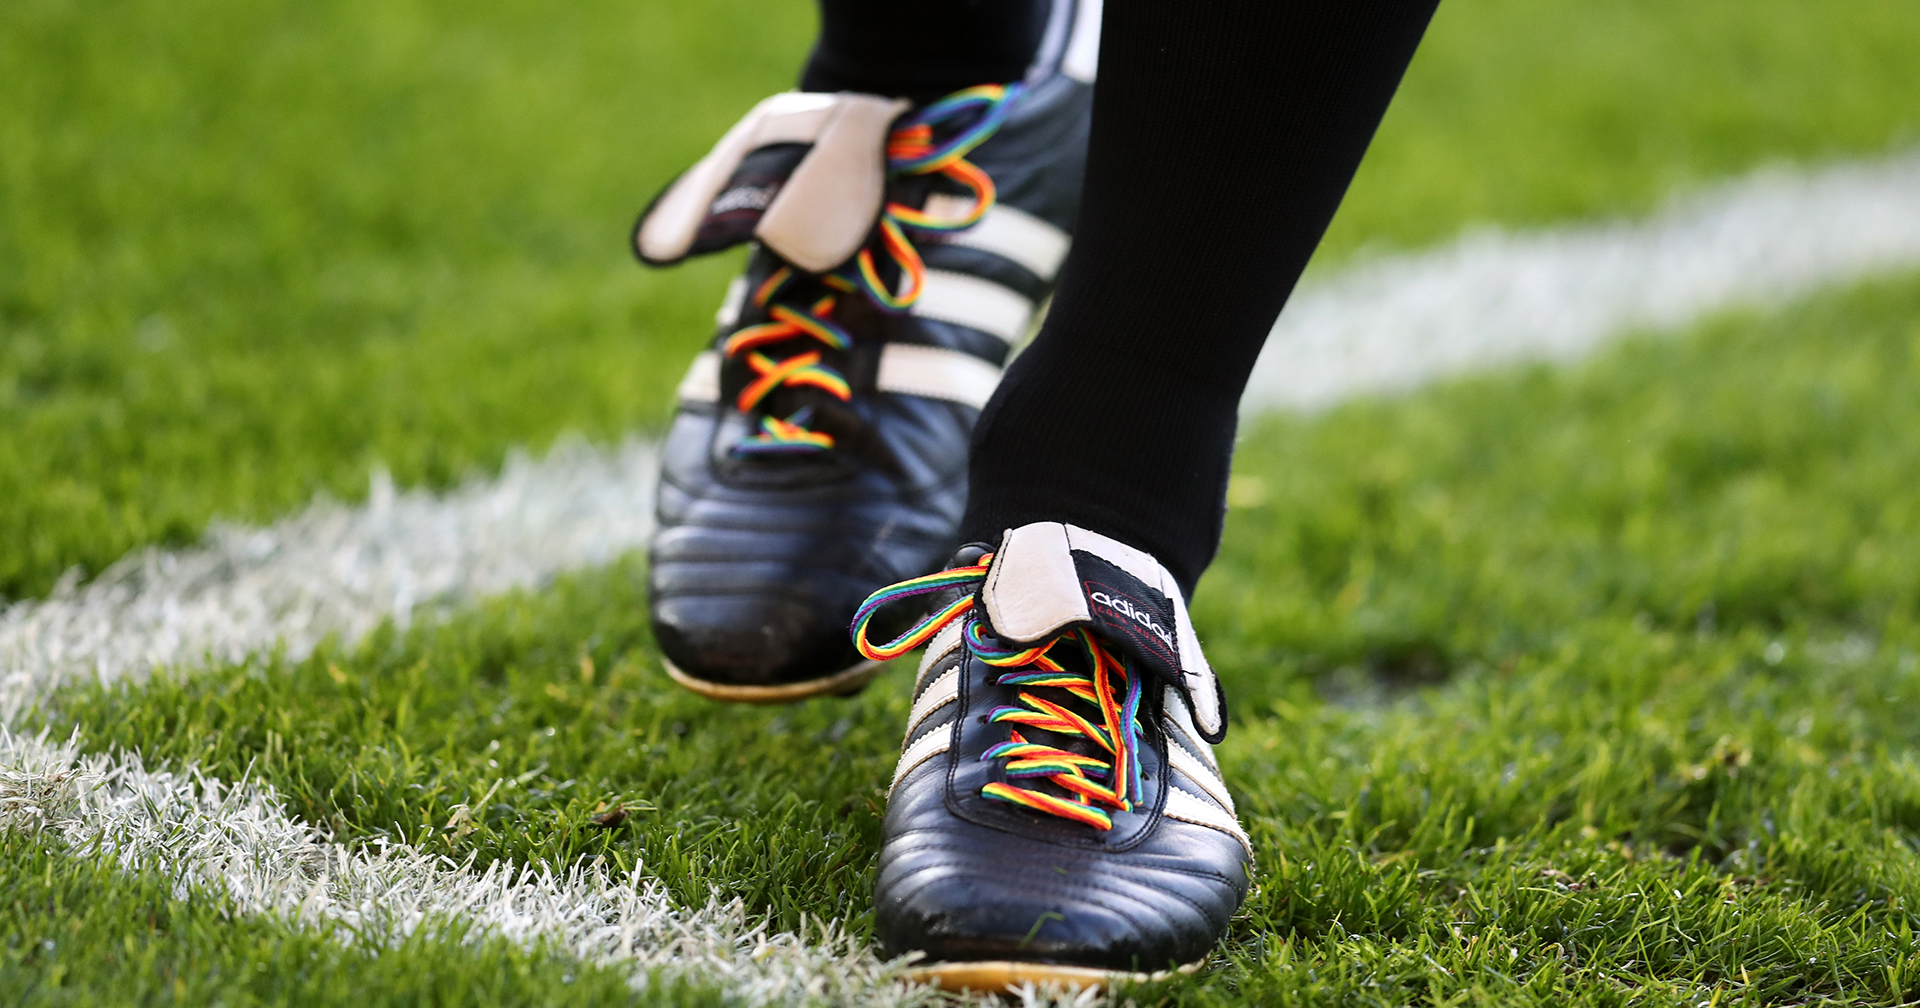 The feet of a Premier League footballer with rainbow laces in their boots